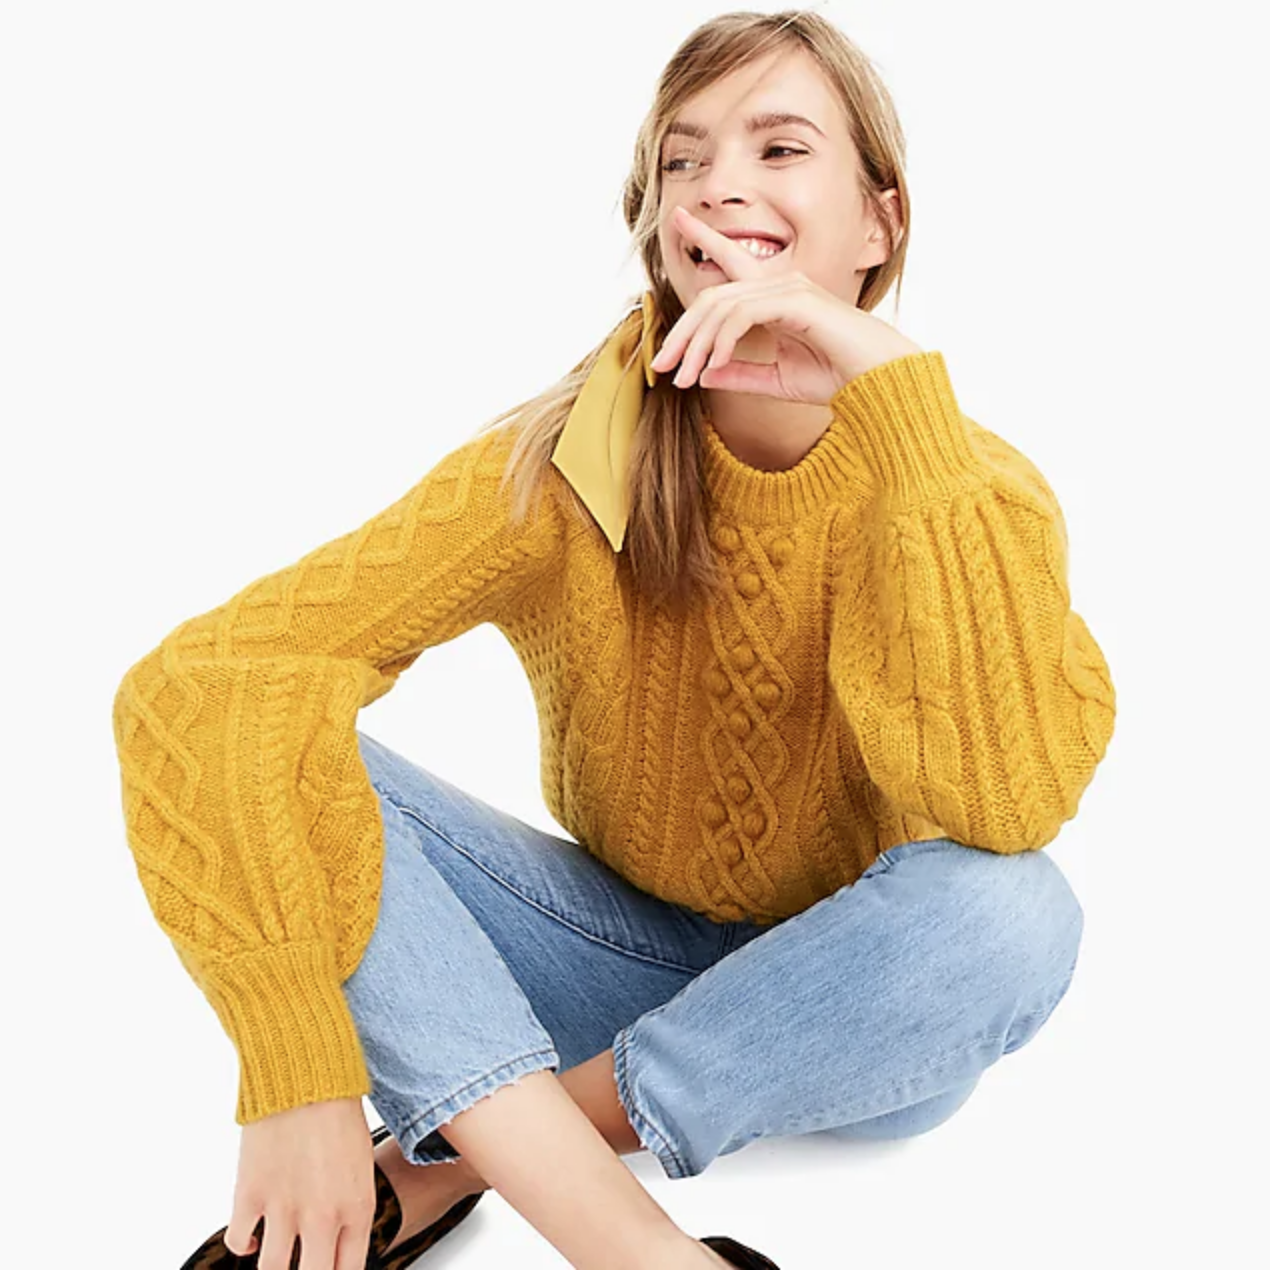 October Finds: J. Crew Balloon-Sleeve Sweater